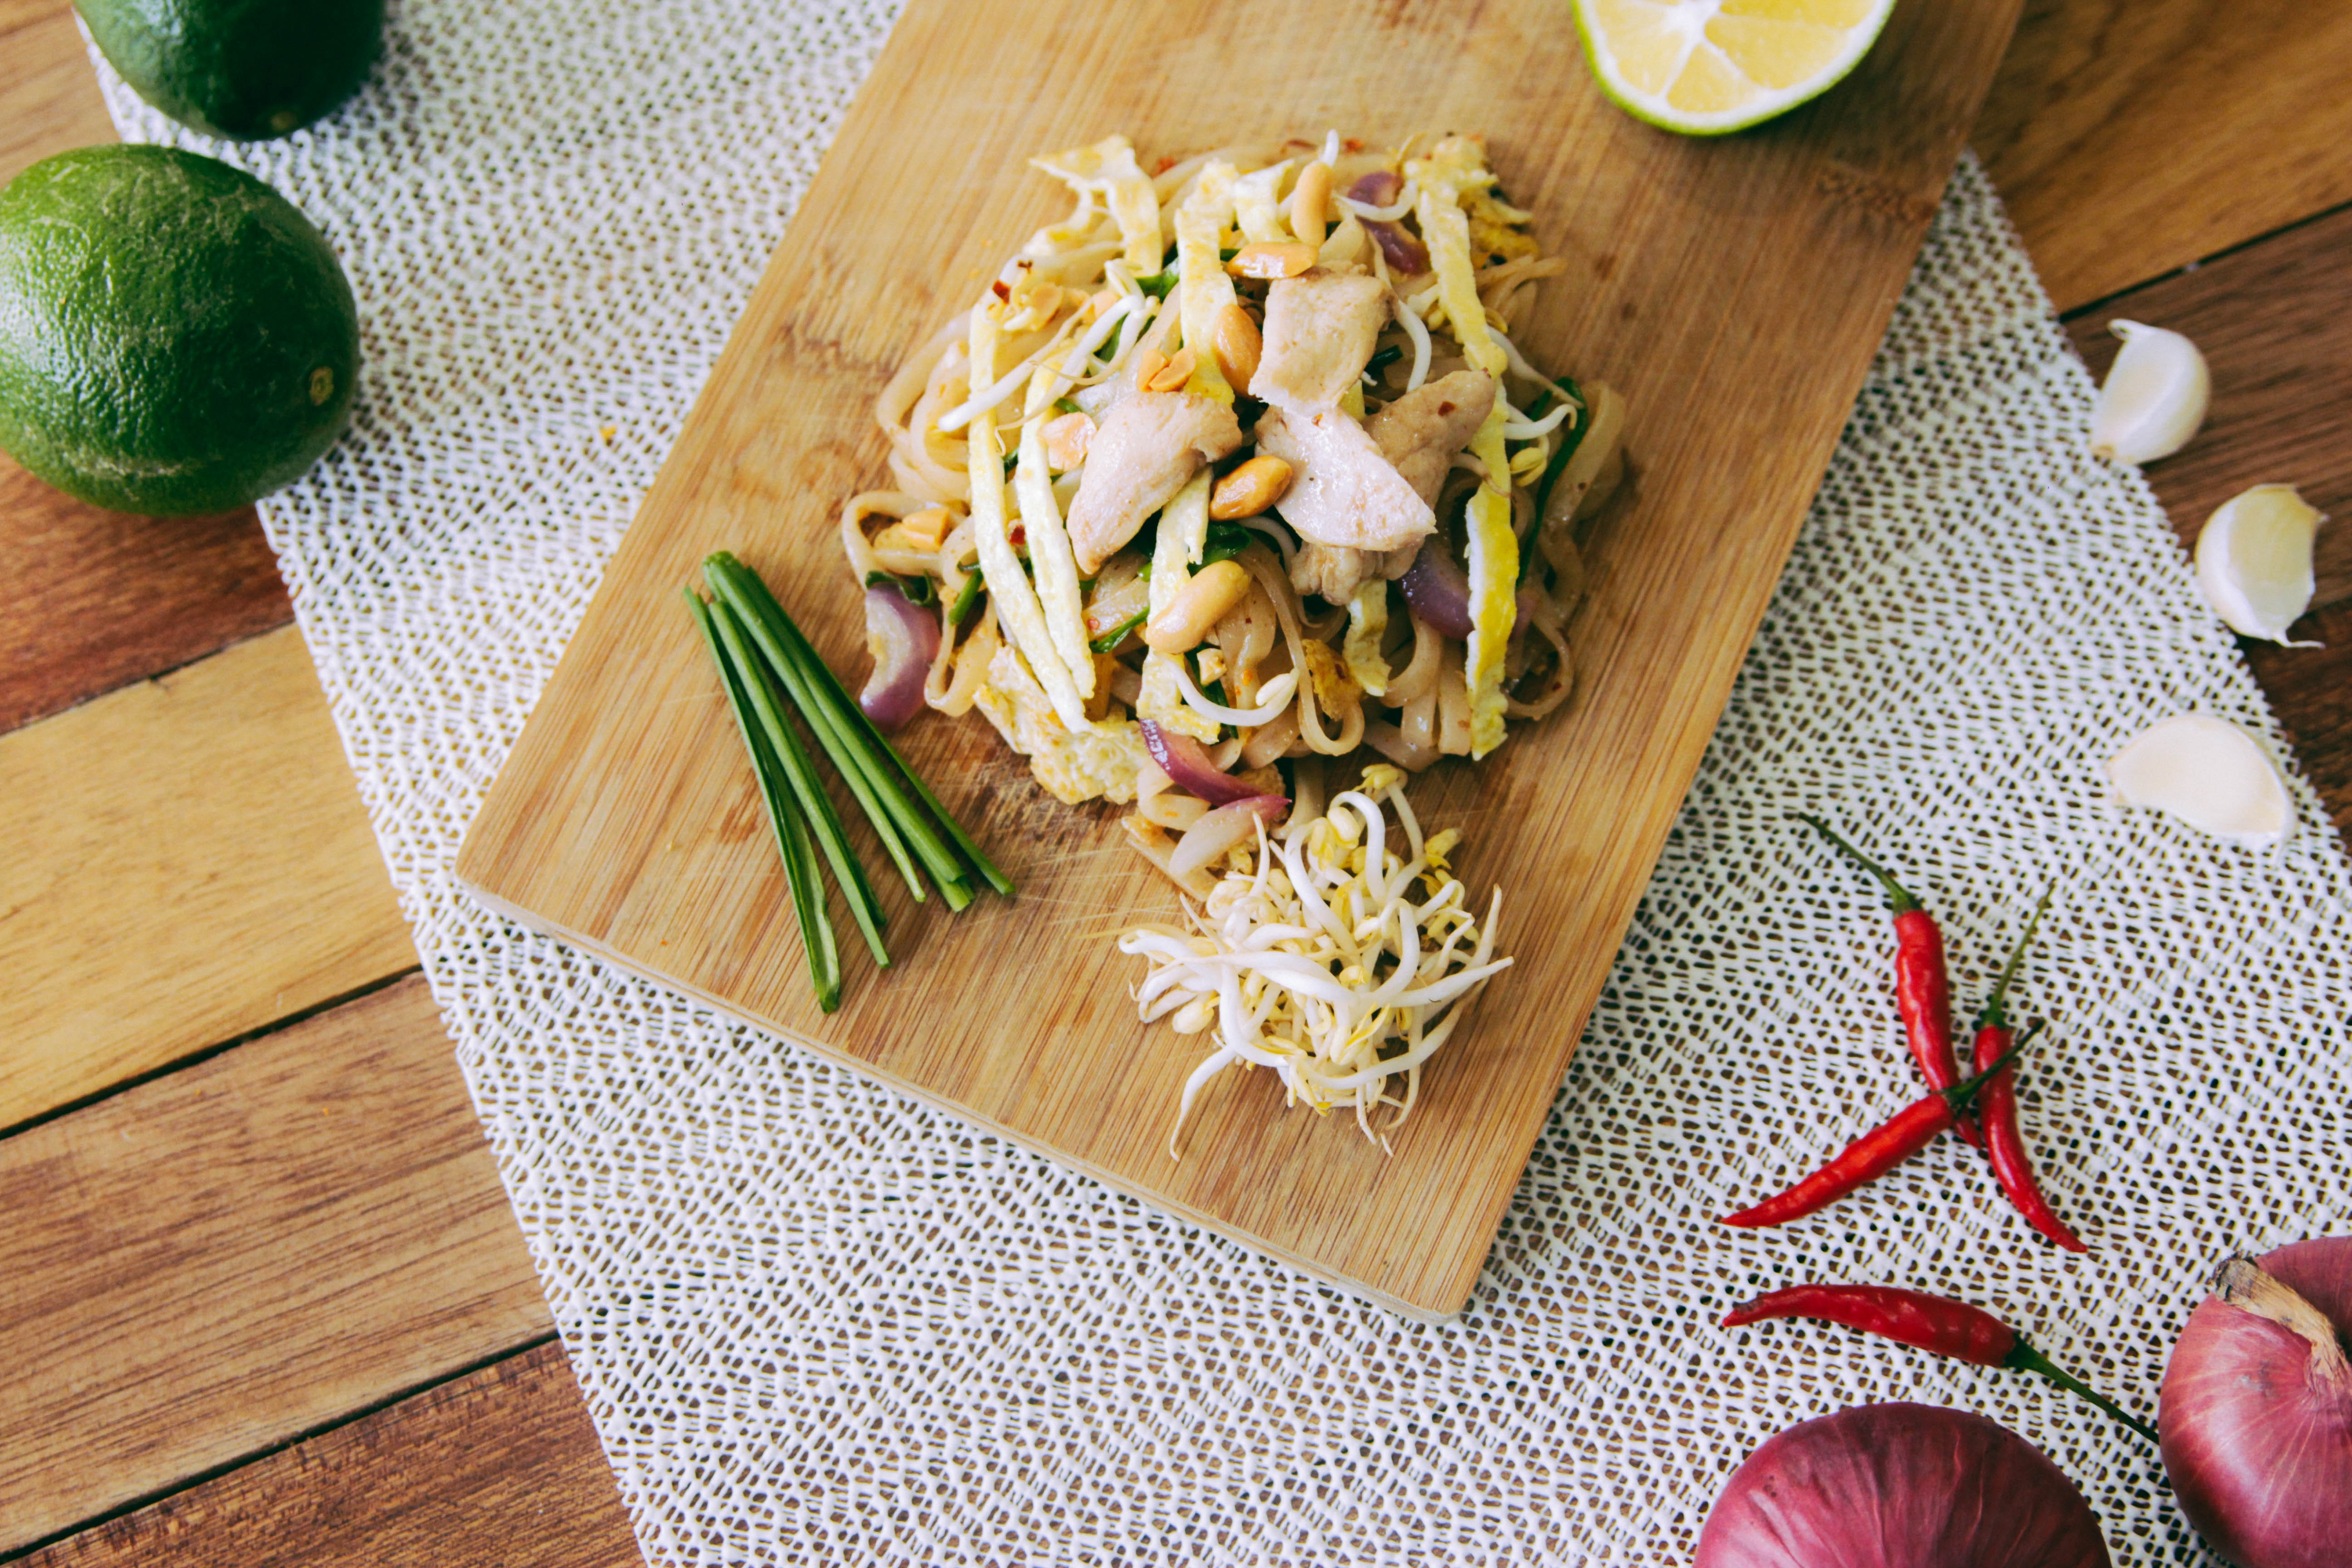 Filipino noodle dish with bean sprouts and vegetables on a cutting board